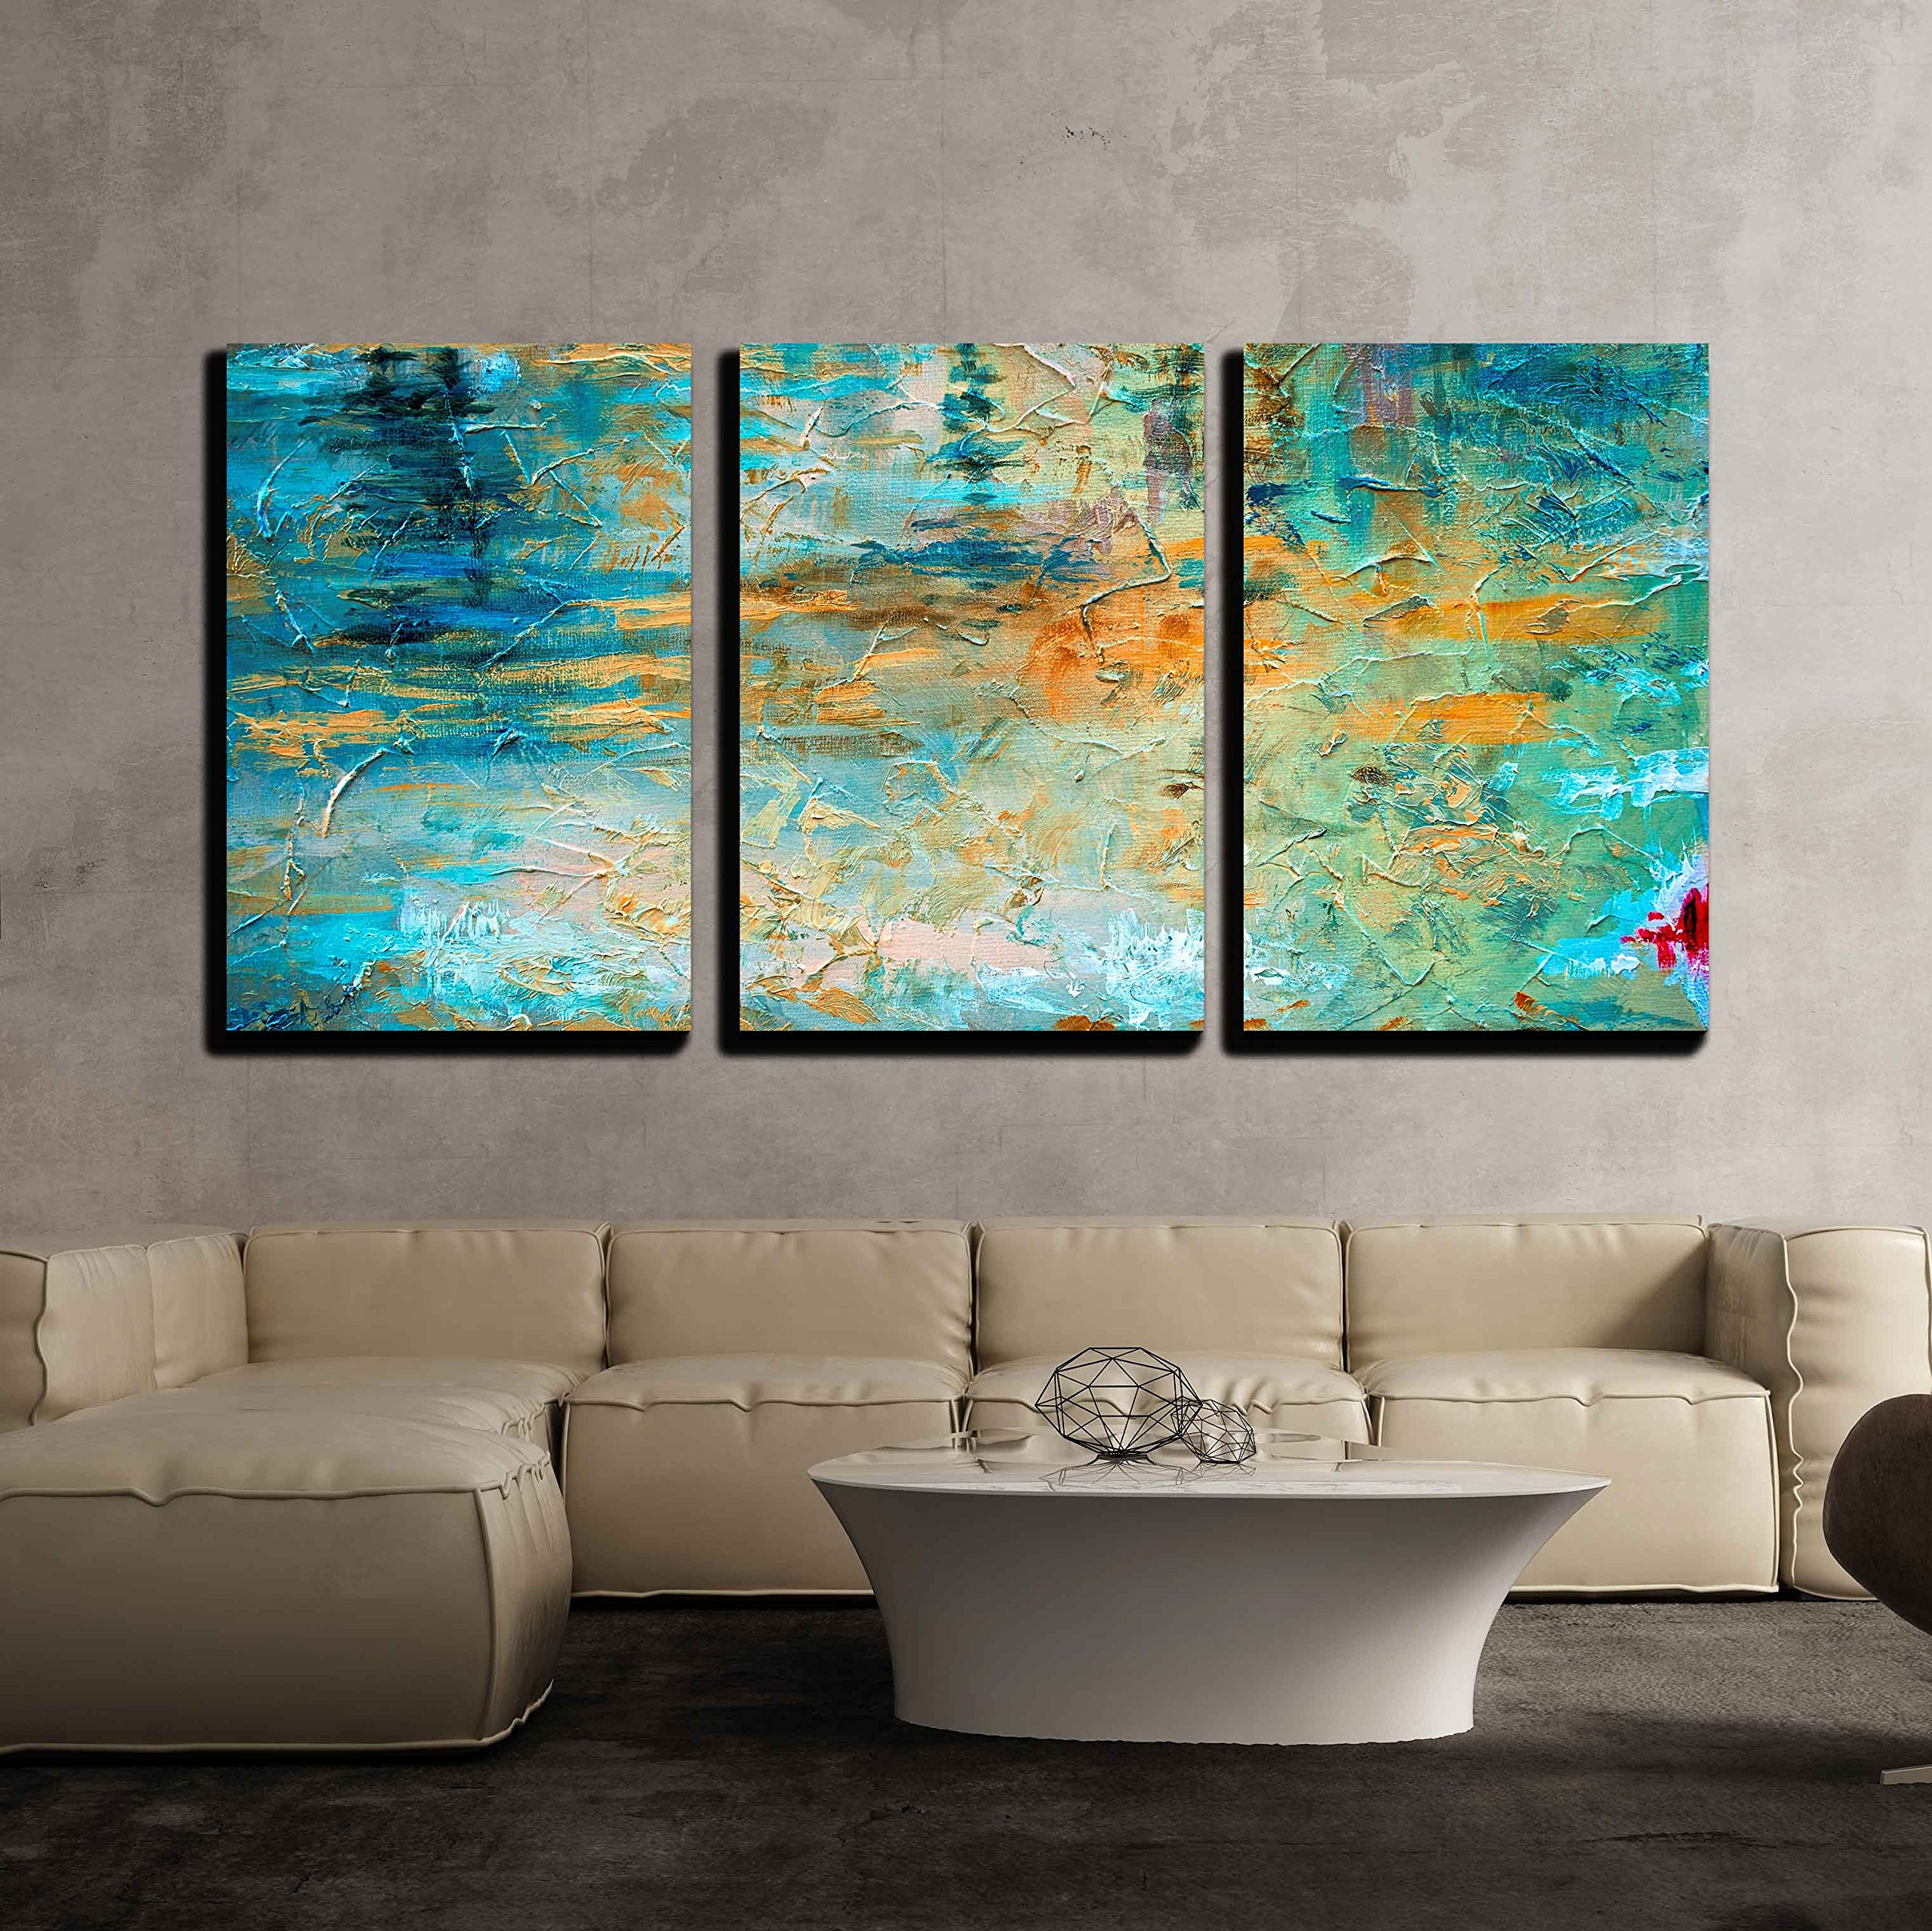 wall26 - 3 Piece Canvas Wall Art - Abstract Oil Paint Texture on Canvas - Modern Home Decor Stretched and Framed Ready to Hang - 24''x36''x3 Panels